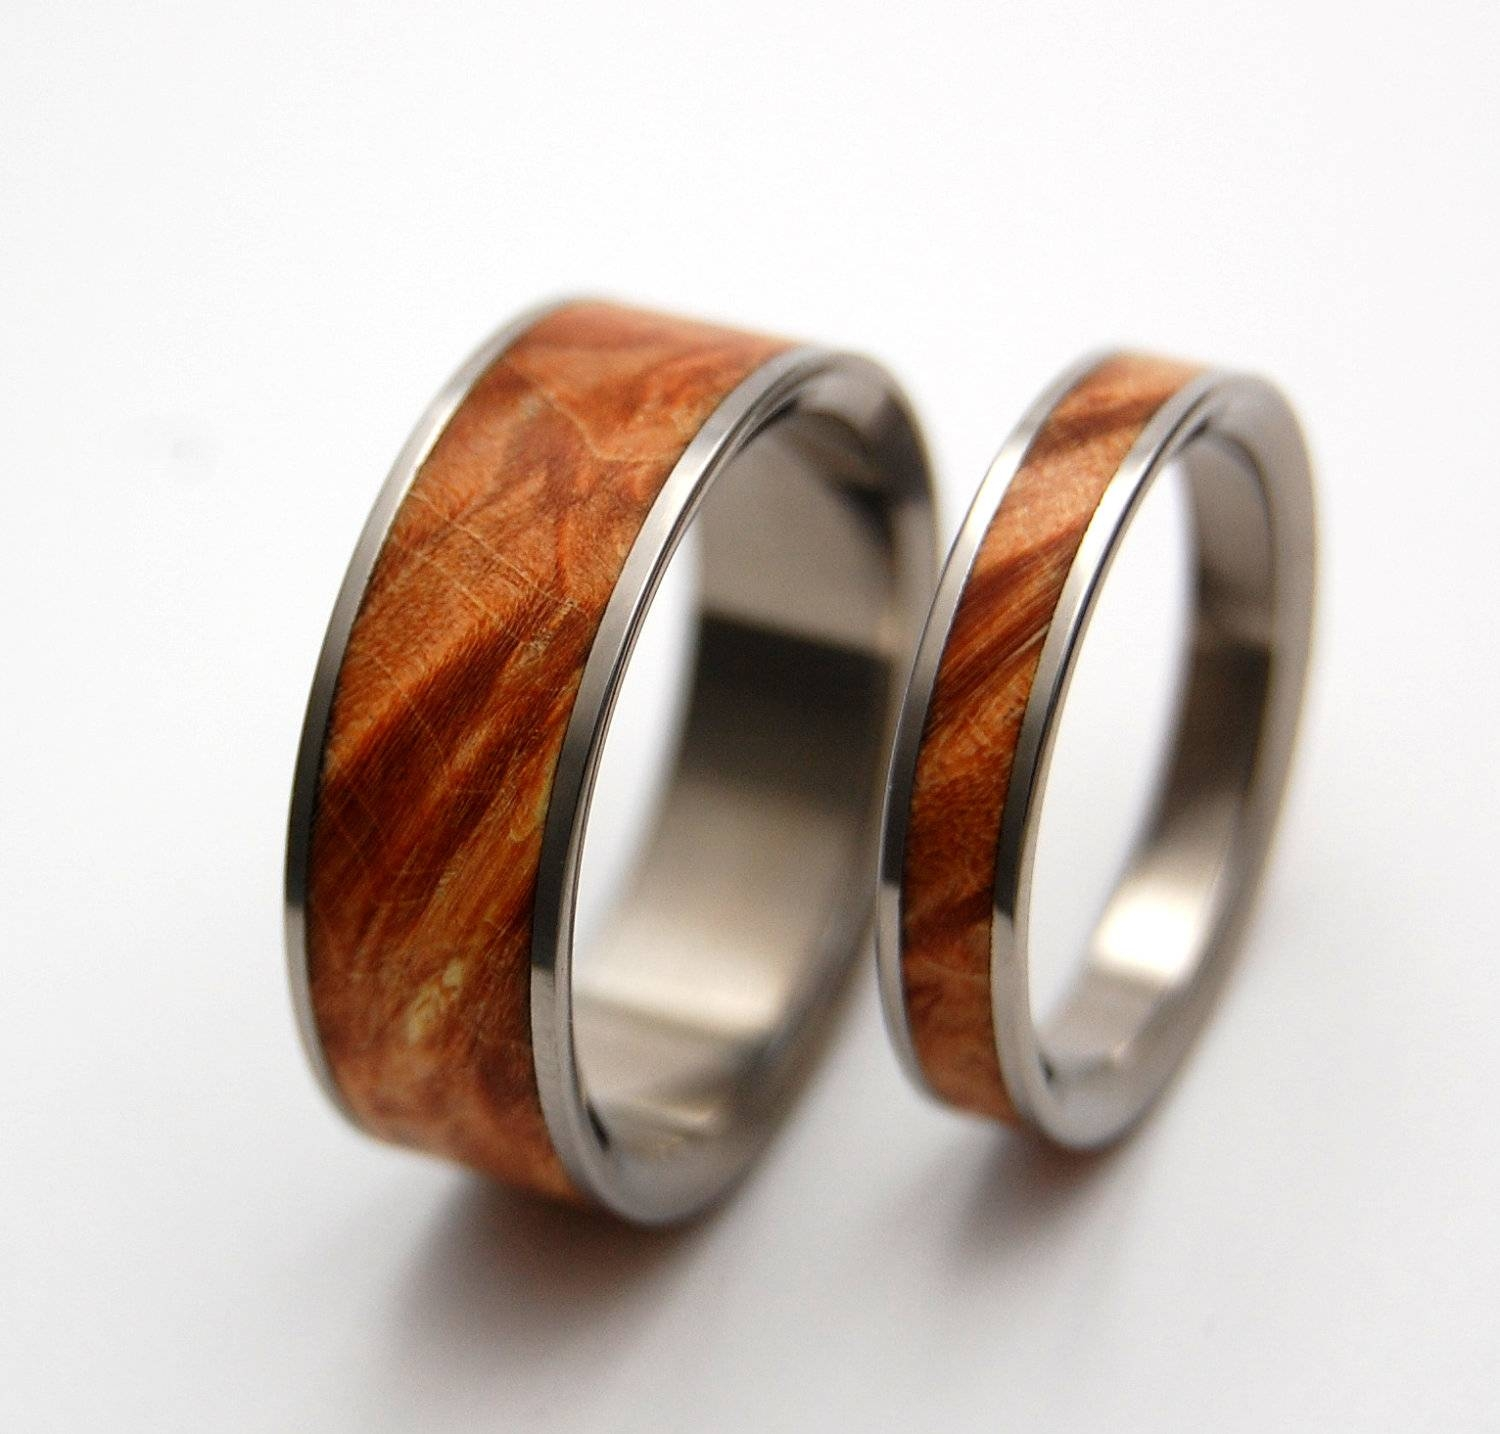 Wedding Rings Titanium Rings Wood Rings Mens Rings Inside Wood Grain Men's Wedding Bands (View 14 of 15)